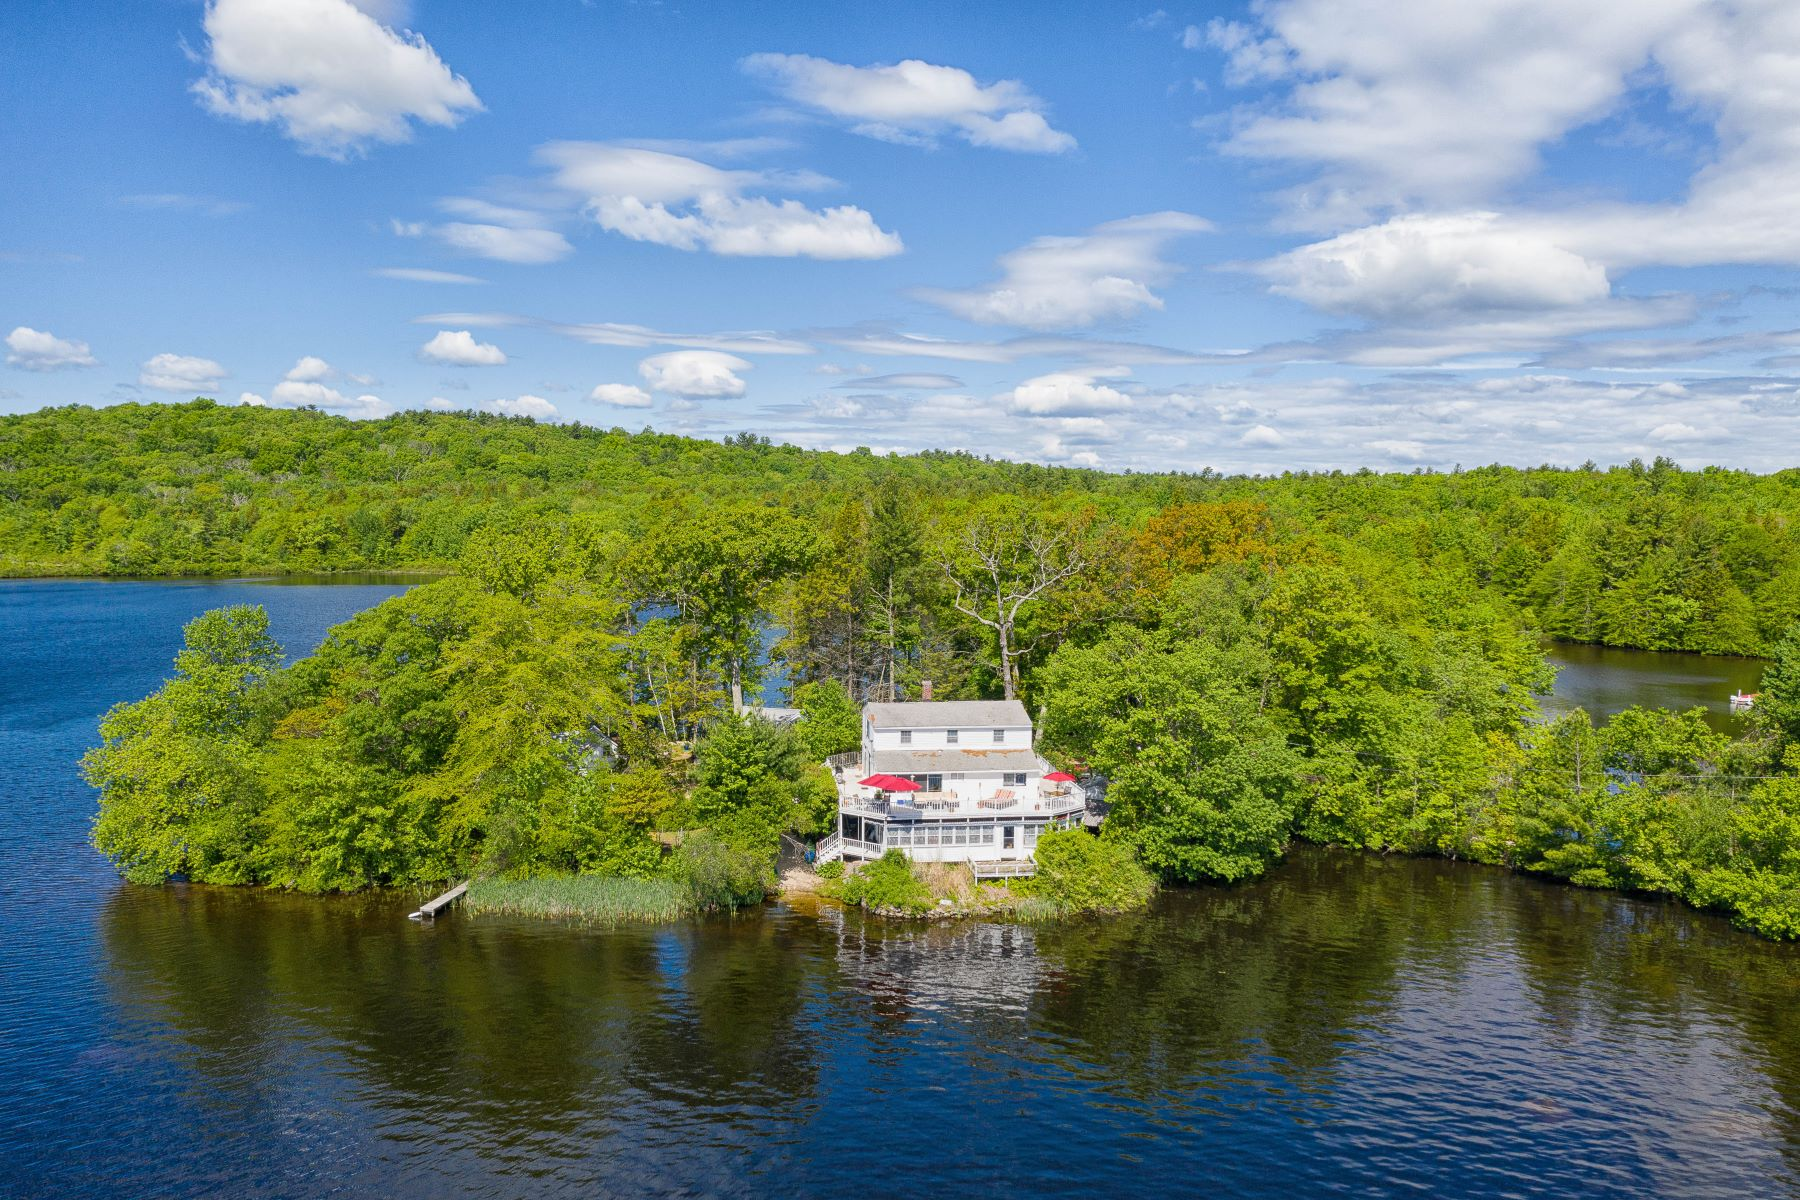 Single Family Homes for Sale at 115 Sand Dam Road, Glocester, RI 115 Sand Dam Road Glocester, Rhode Island 02814 United States